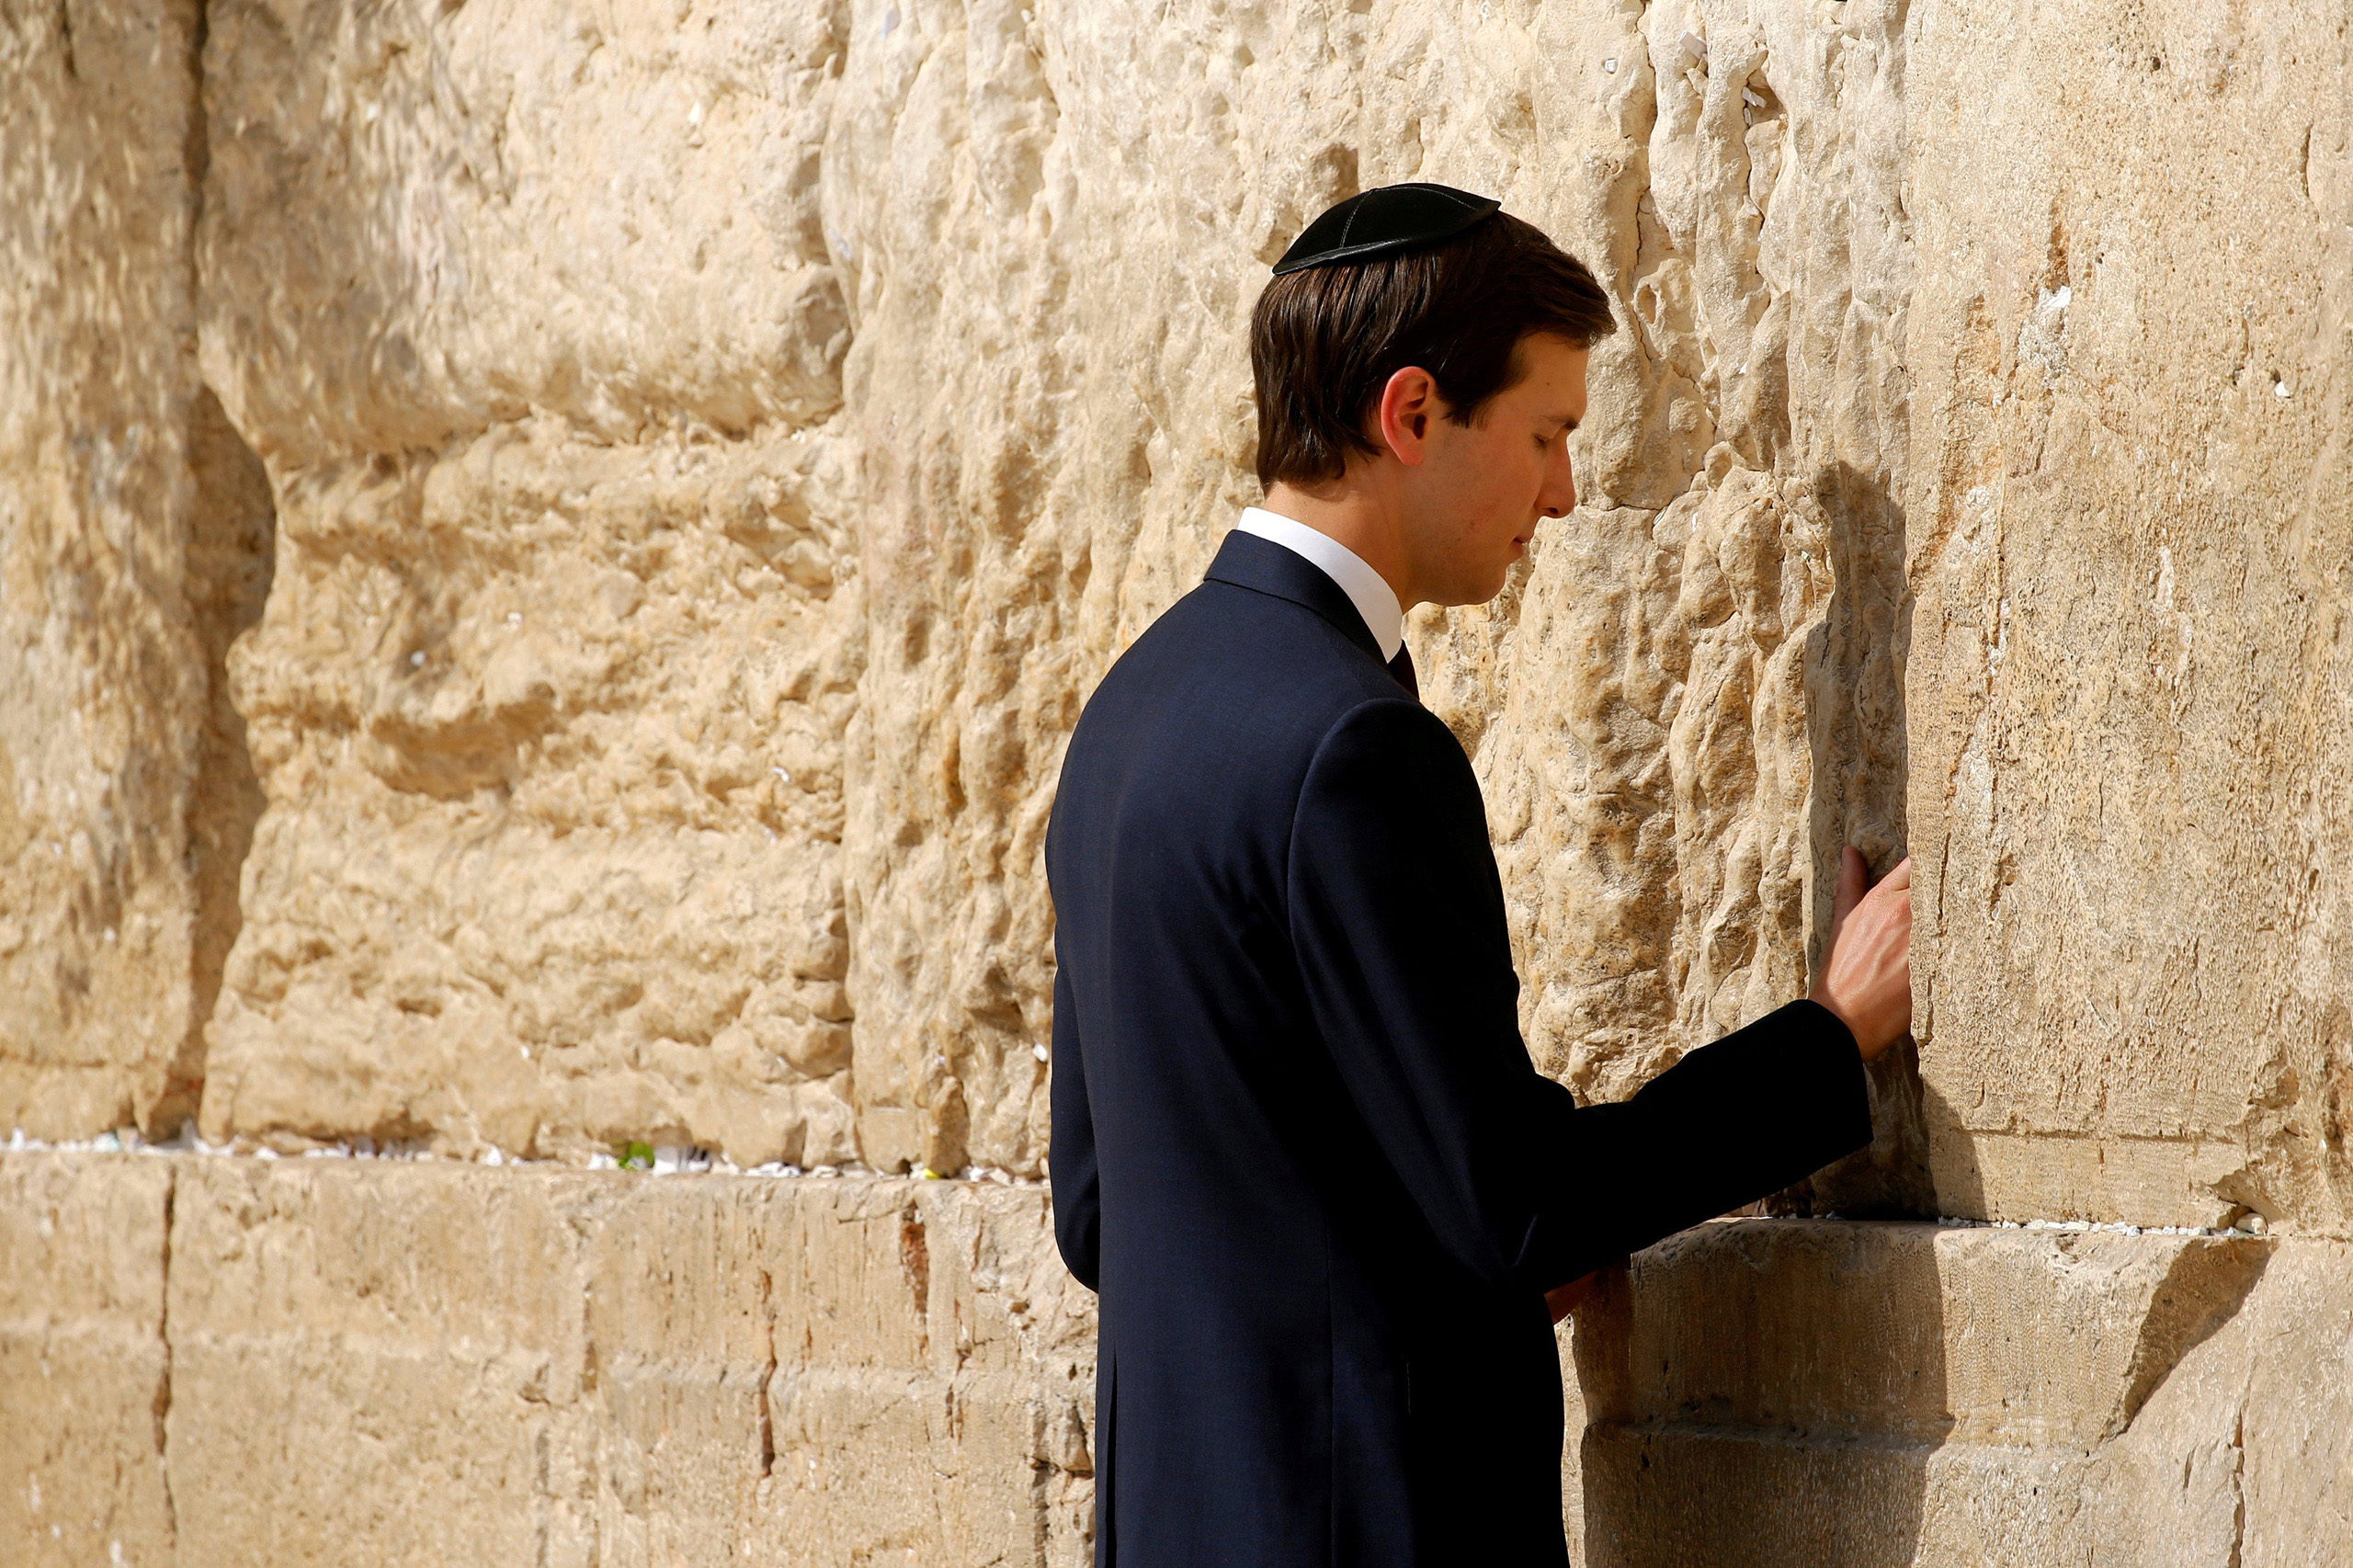 White House senior advisor Jared Kushner leaves a note at the Western Wall in Jerusalem May 22, 2017.